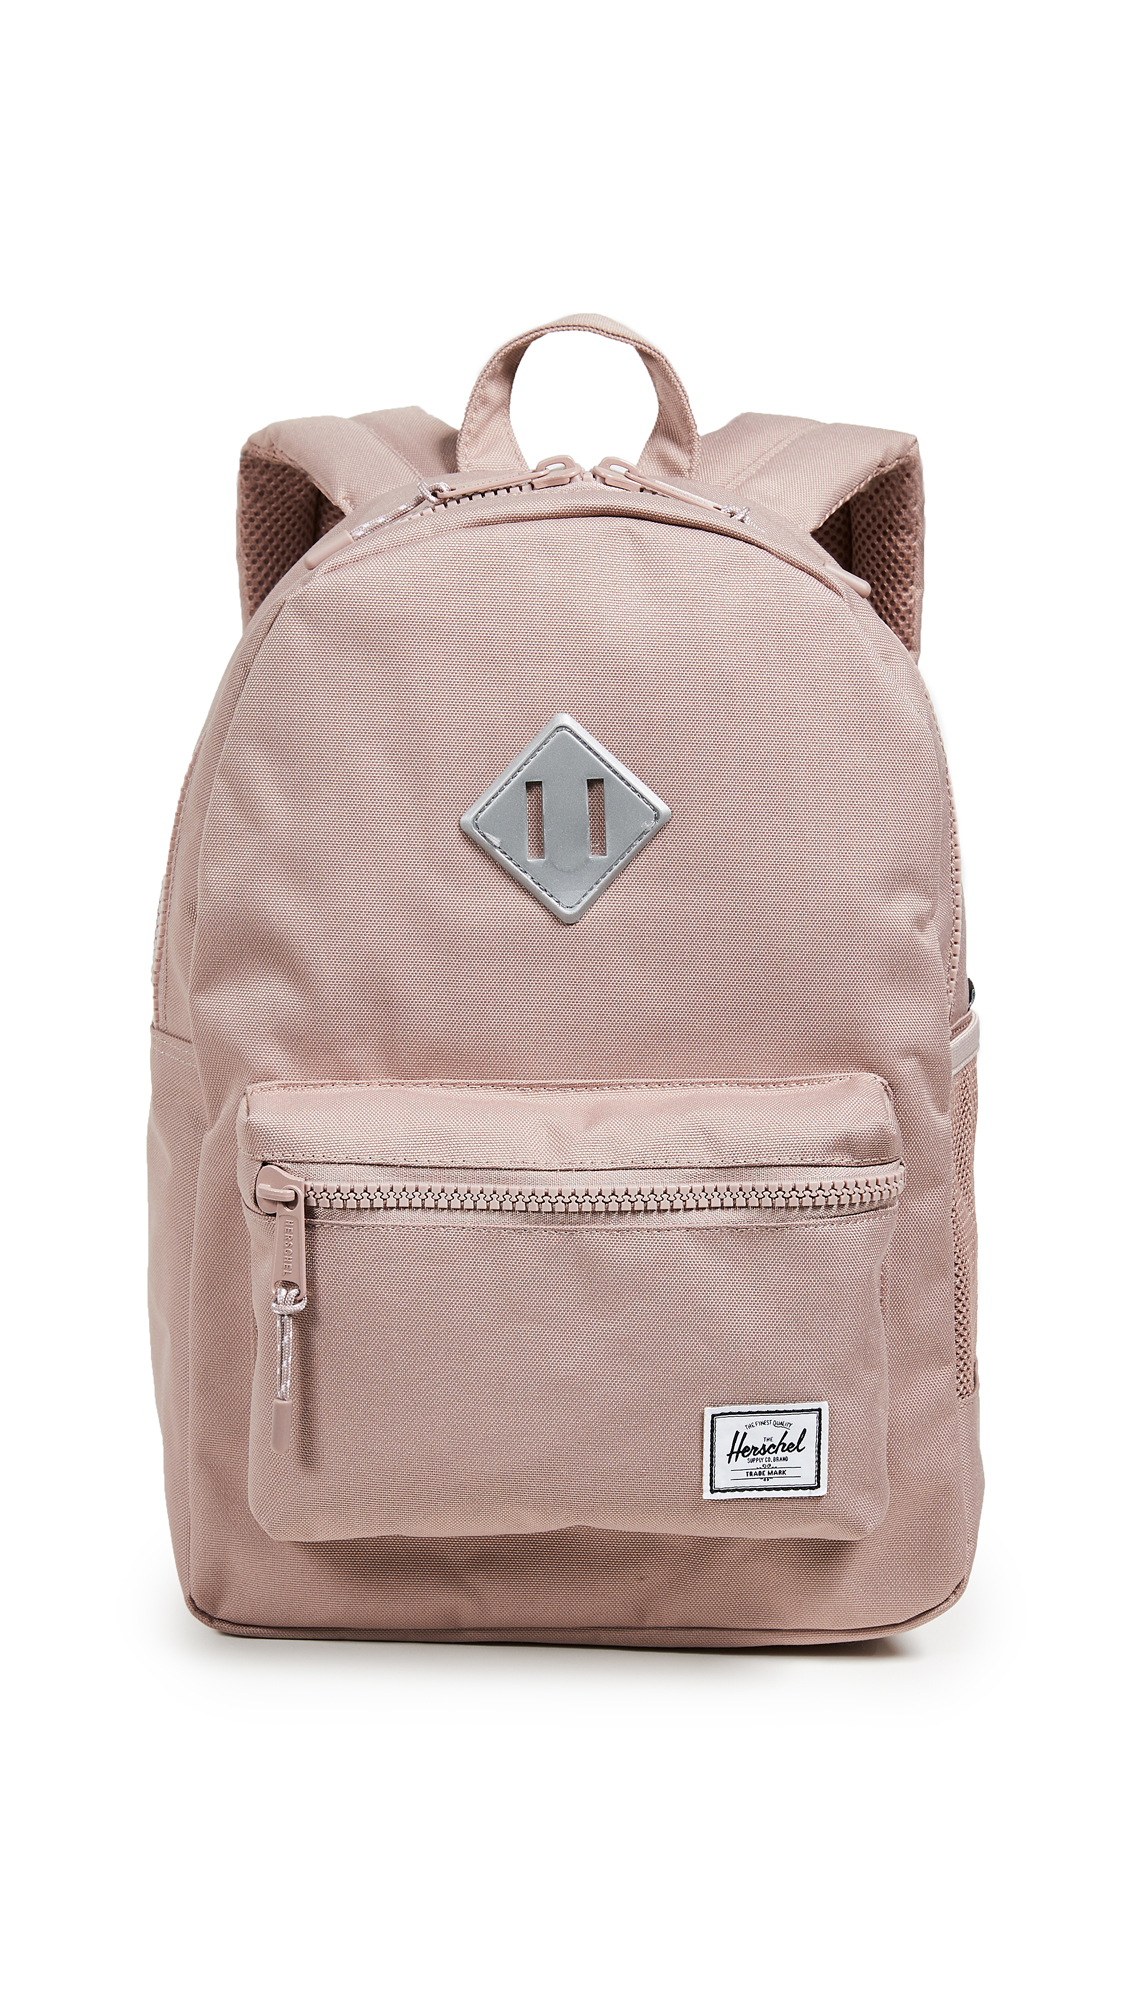 ddfe42ac8dd8 Herschel Supply Co. Heritage Youth Backpack In Ash Rose Silver ...